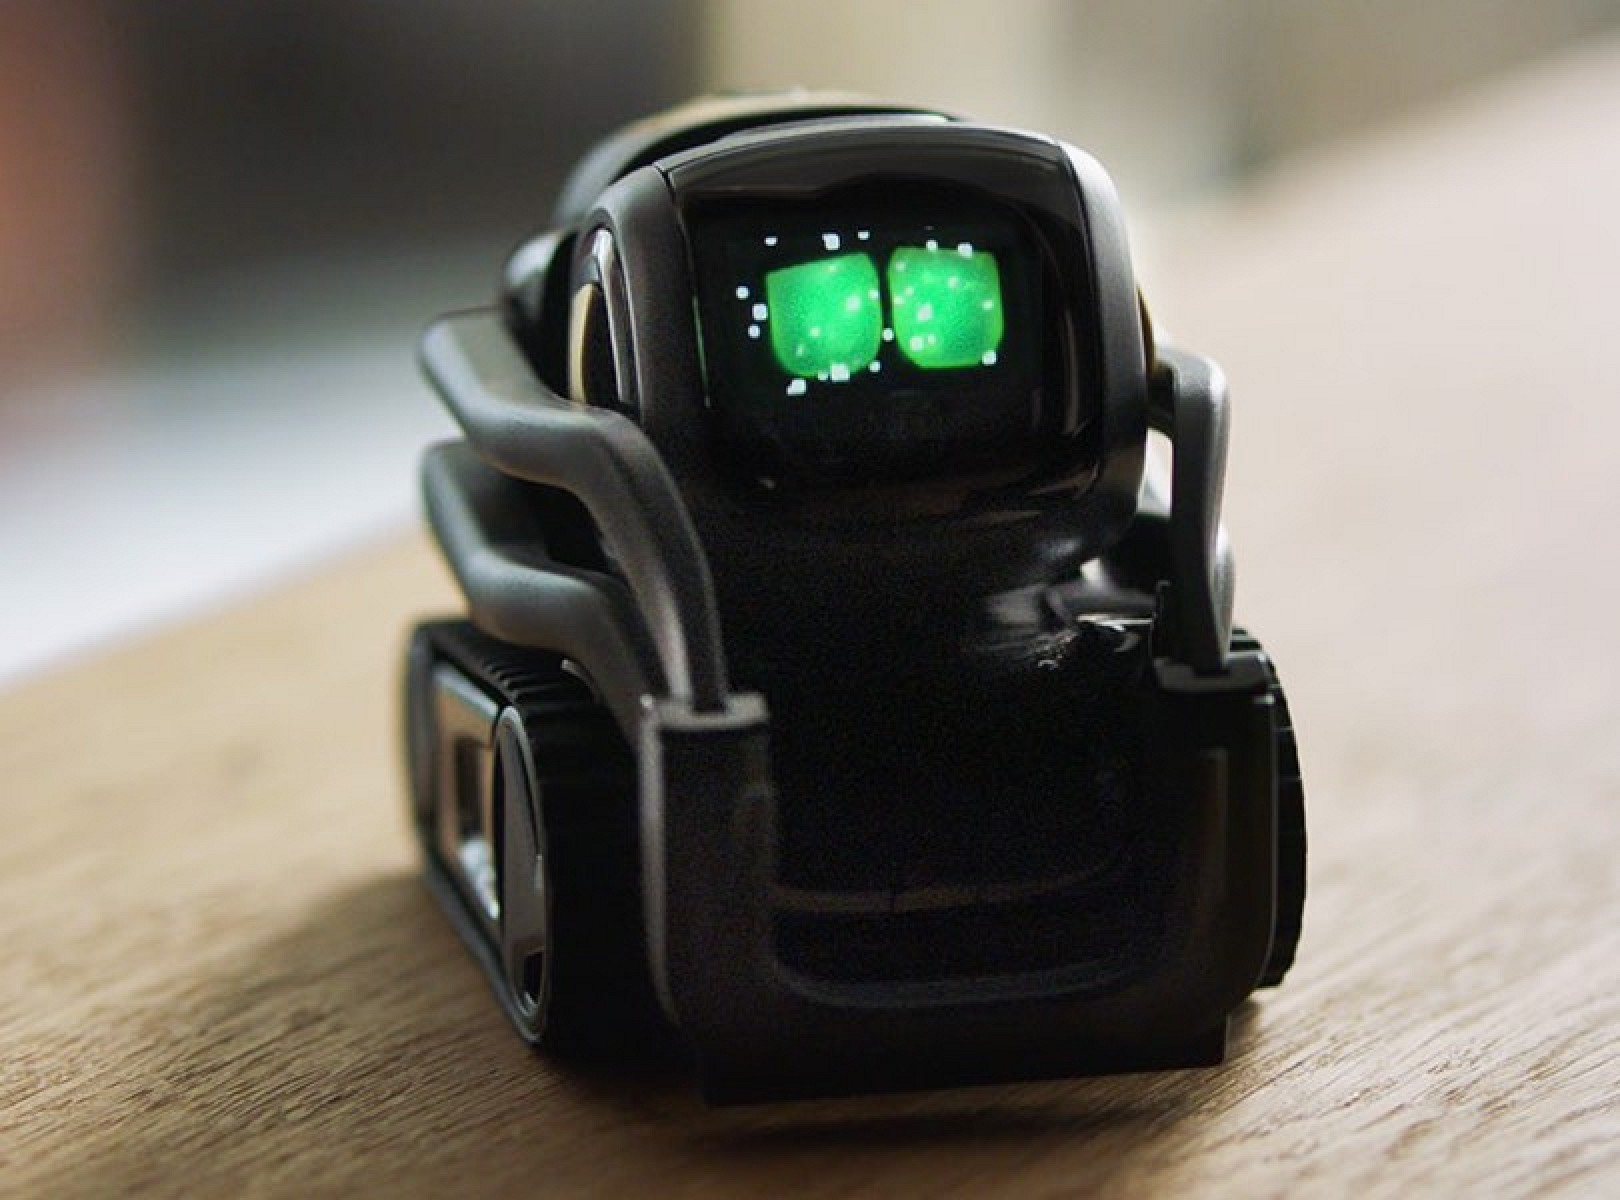 Anki is offering a significant discount on Vector, its interactive, personal home robot.